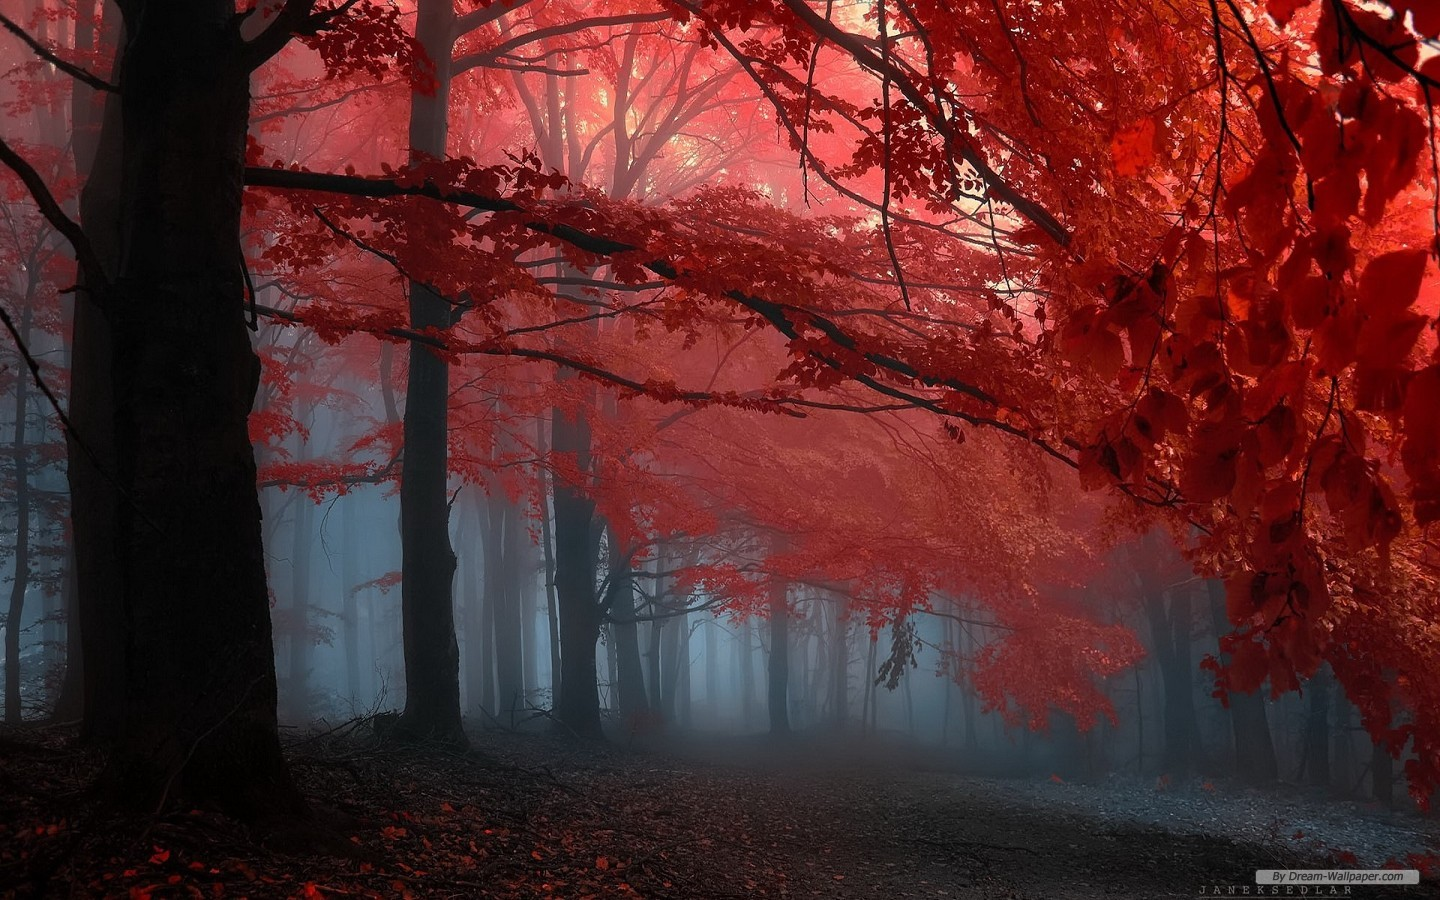 Free Nature wallpaperAutumn red leaves forest trees wallpaper 208